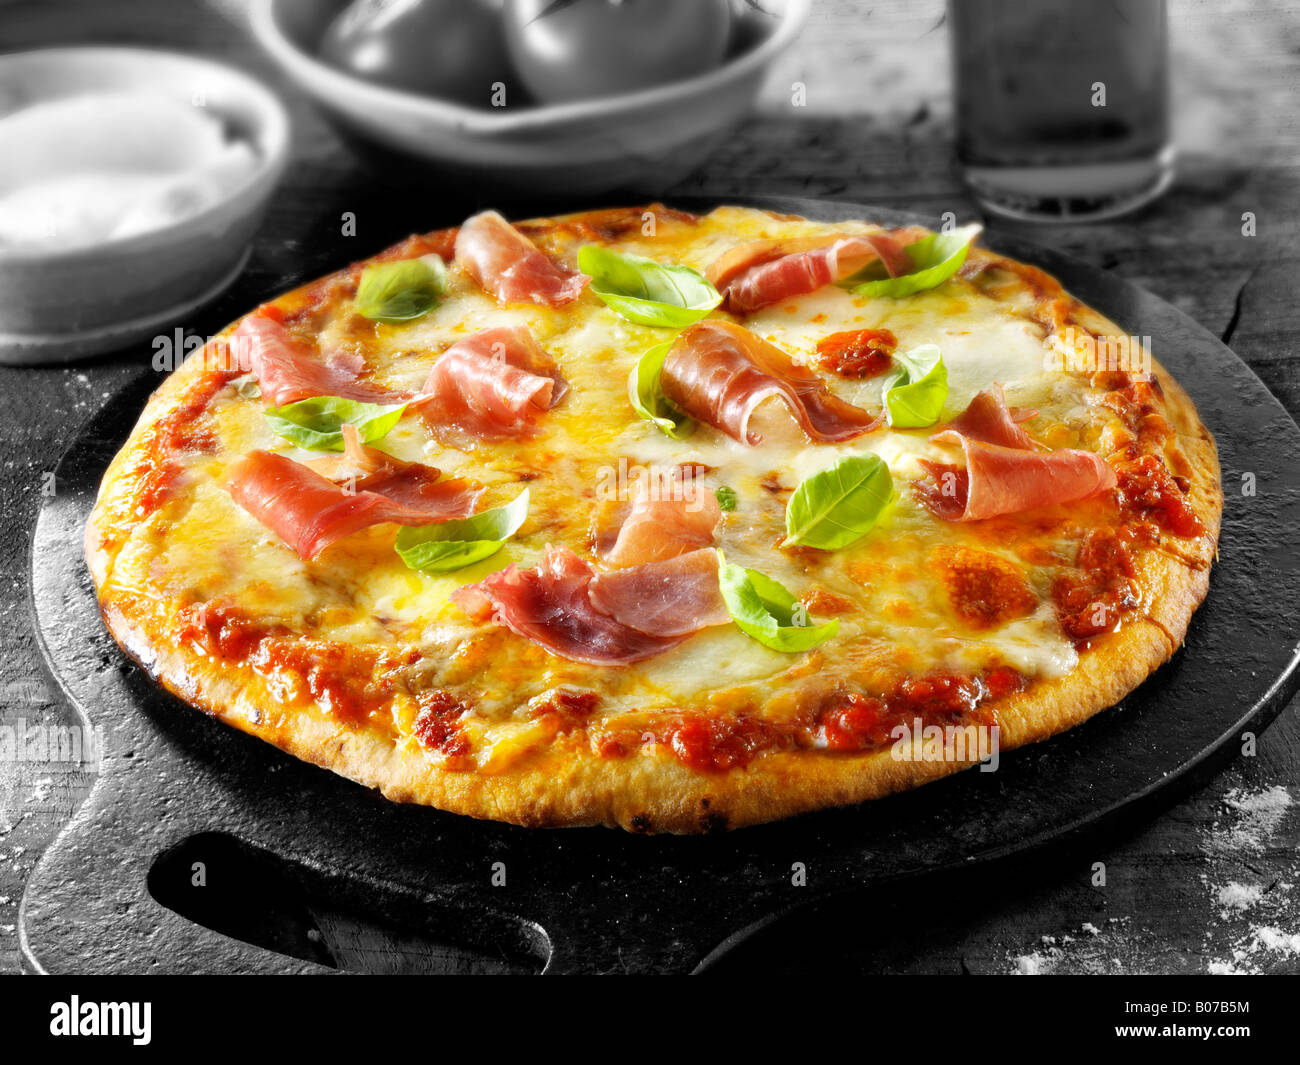 Pizza au jambon procuitto Photo Stock